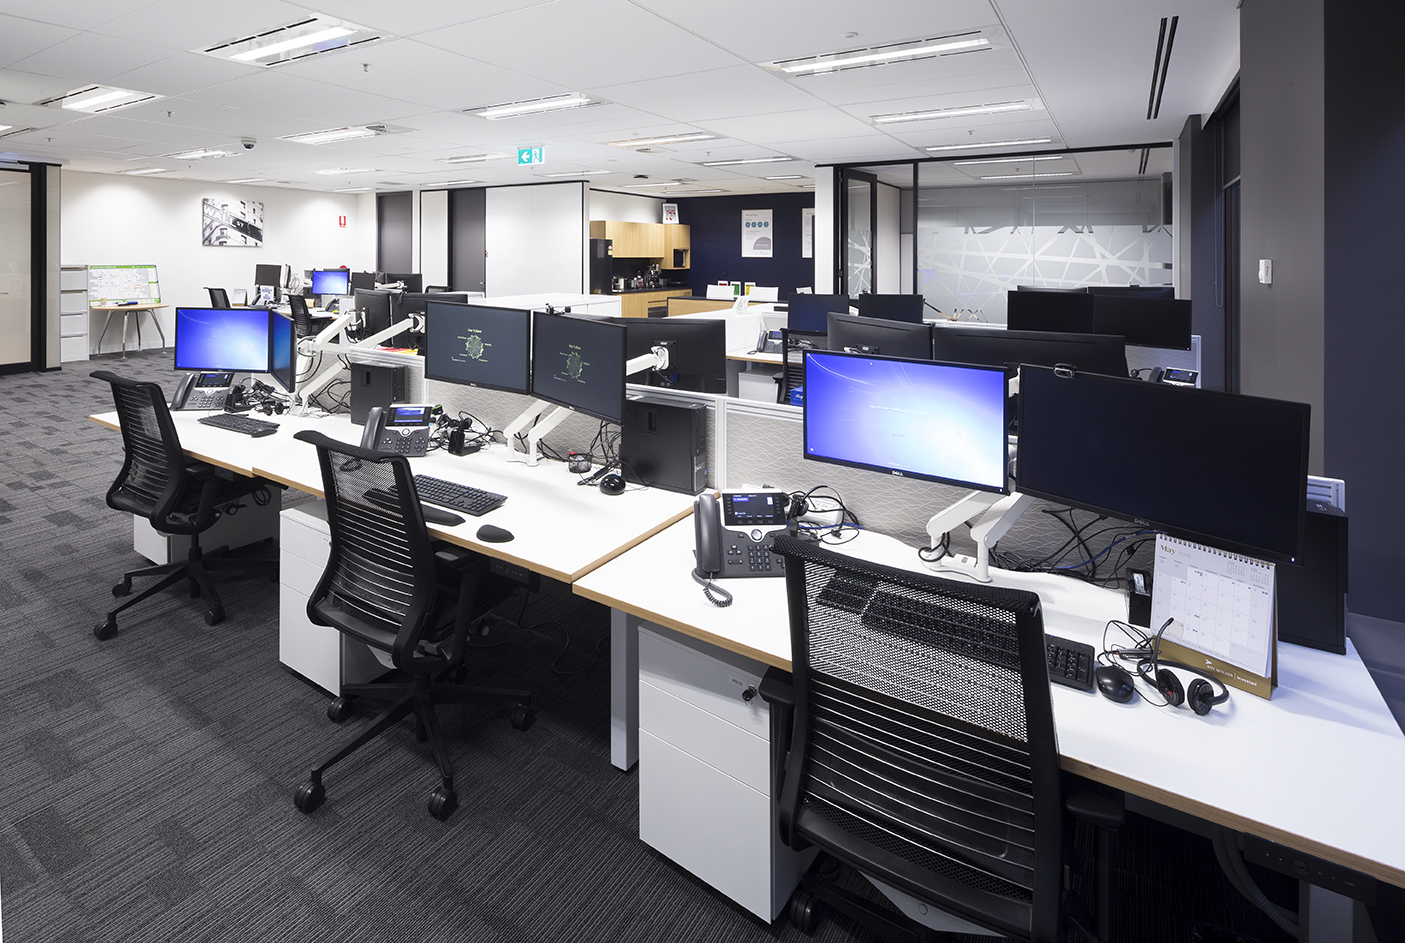 Workstations at BNY Mellon optimised for ergonomics and productivity in an open plan setting.